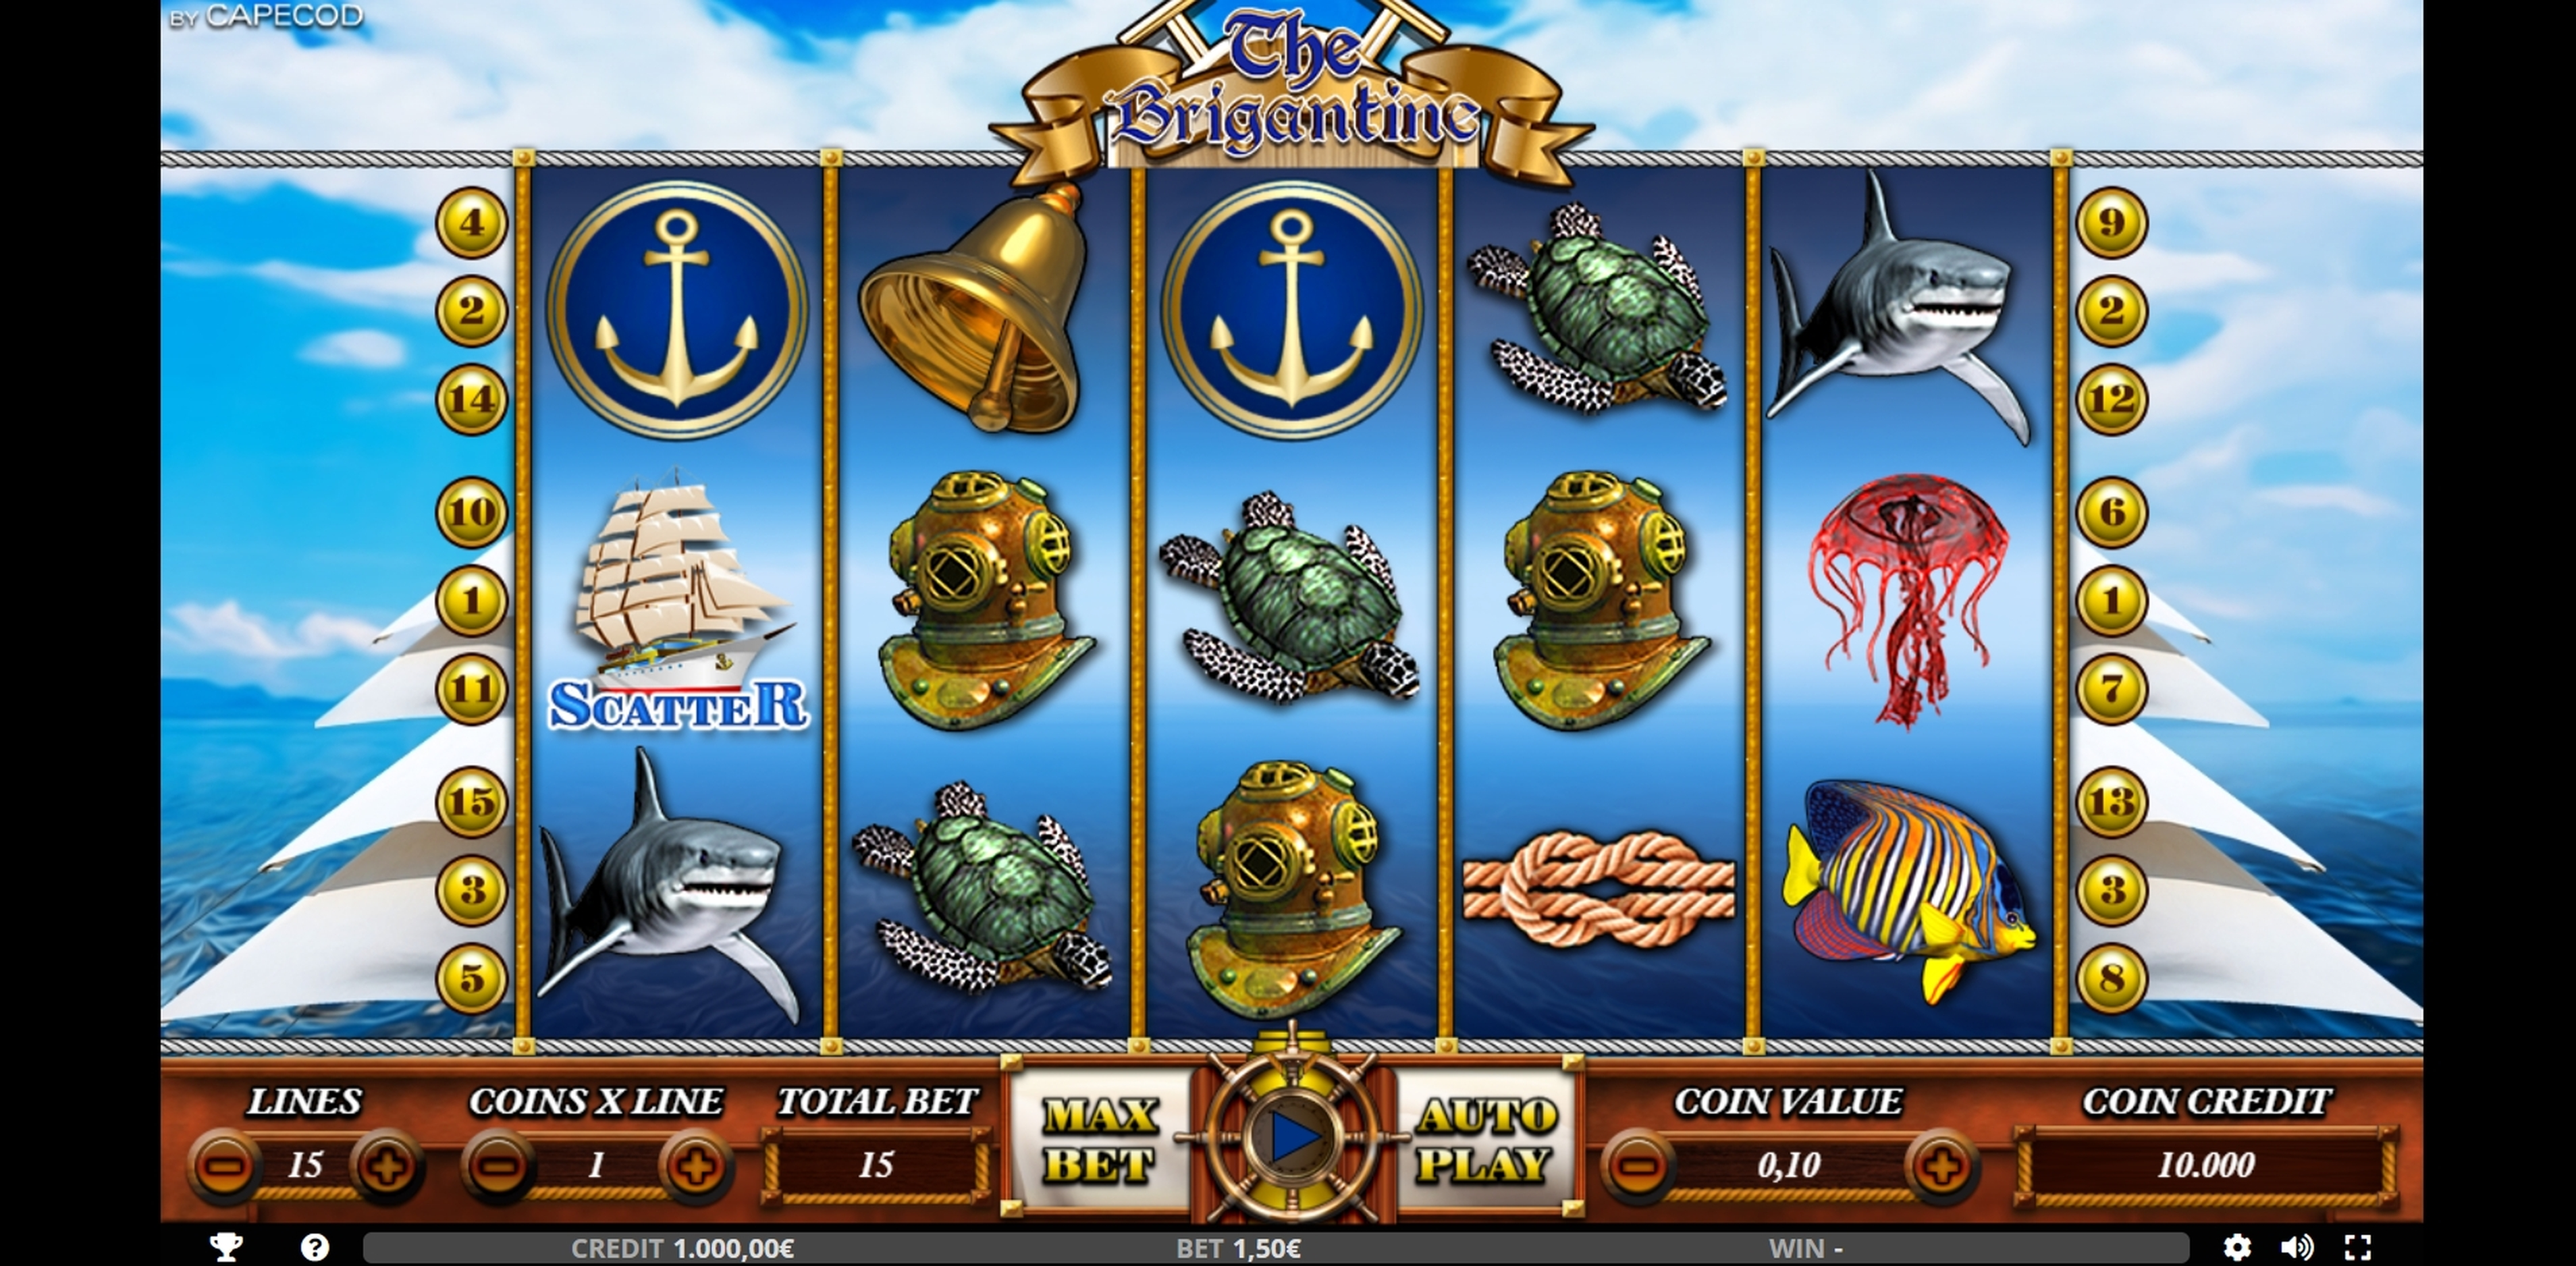 Reels in THE BRIG Slot Game by Capecod Gaming